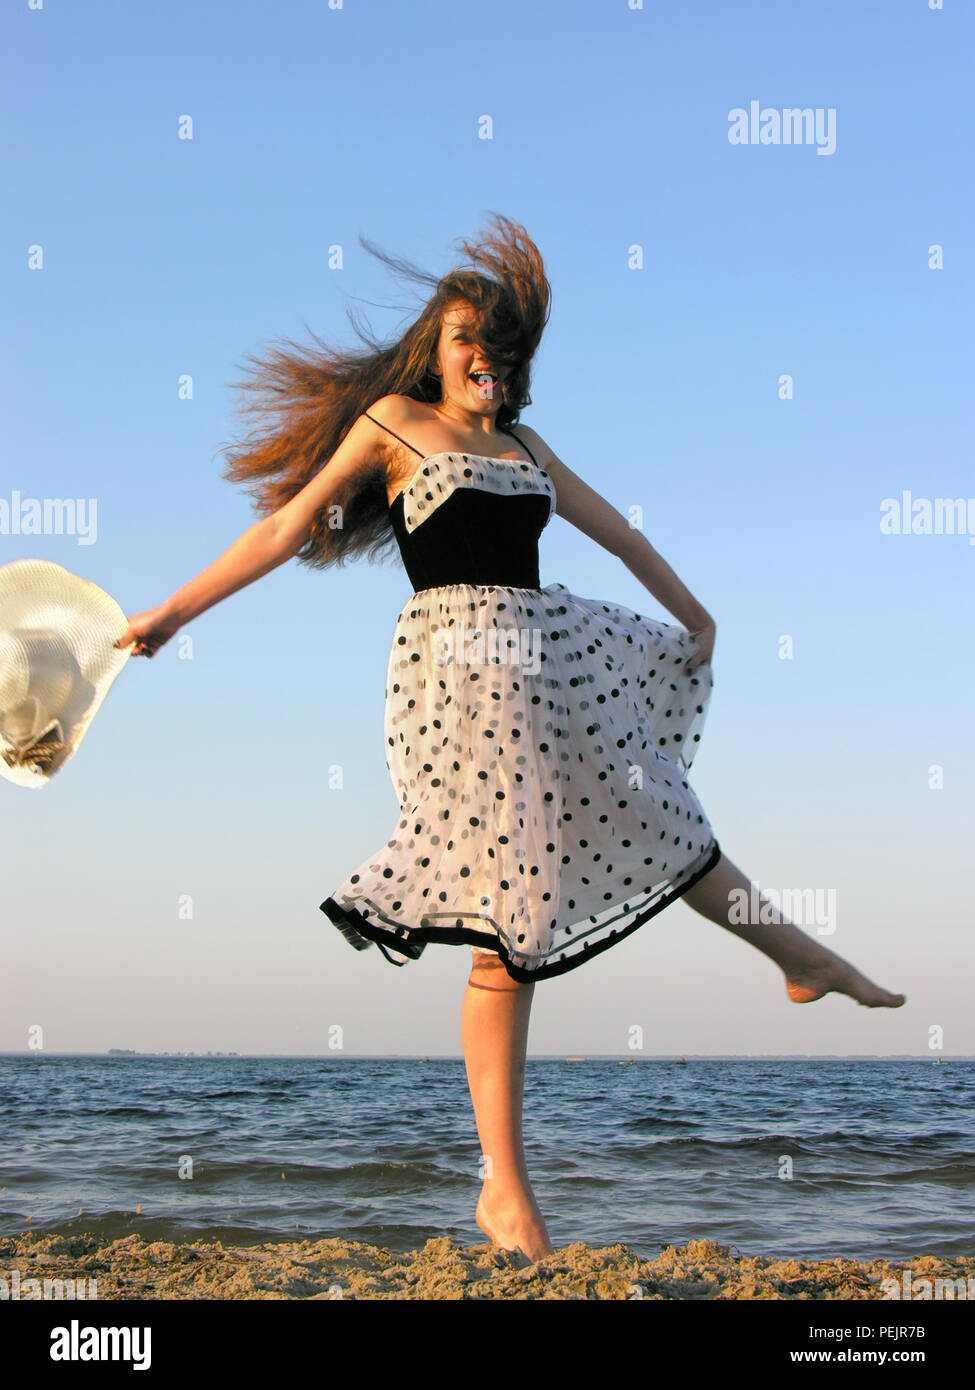 cheerful young woman at the beach, windy weather, motion blur - Stock Image